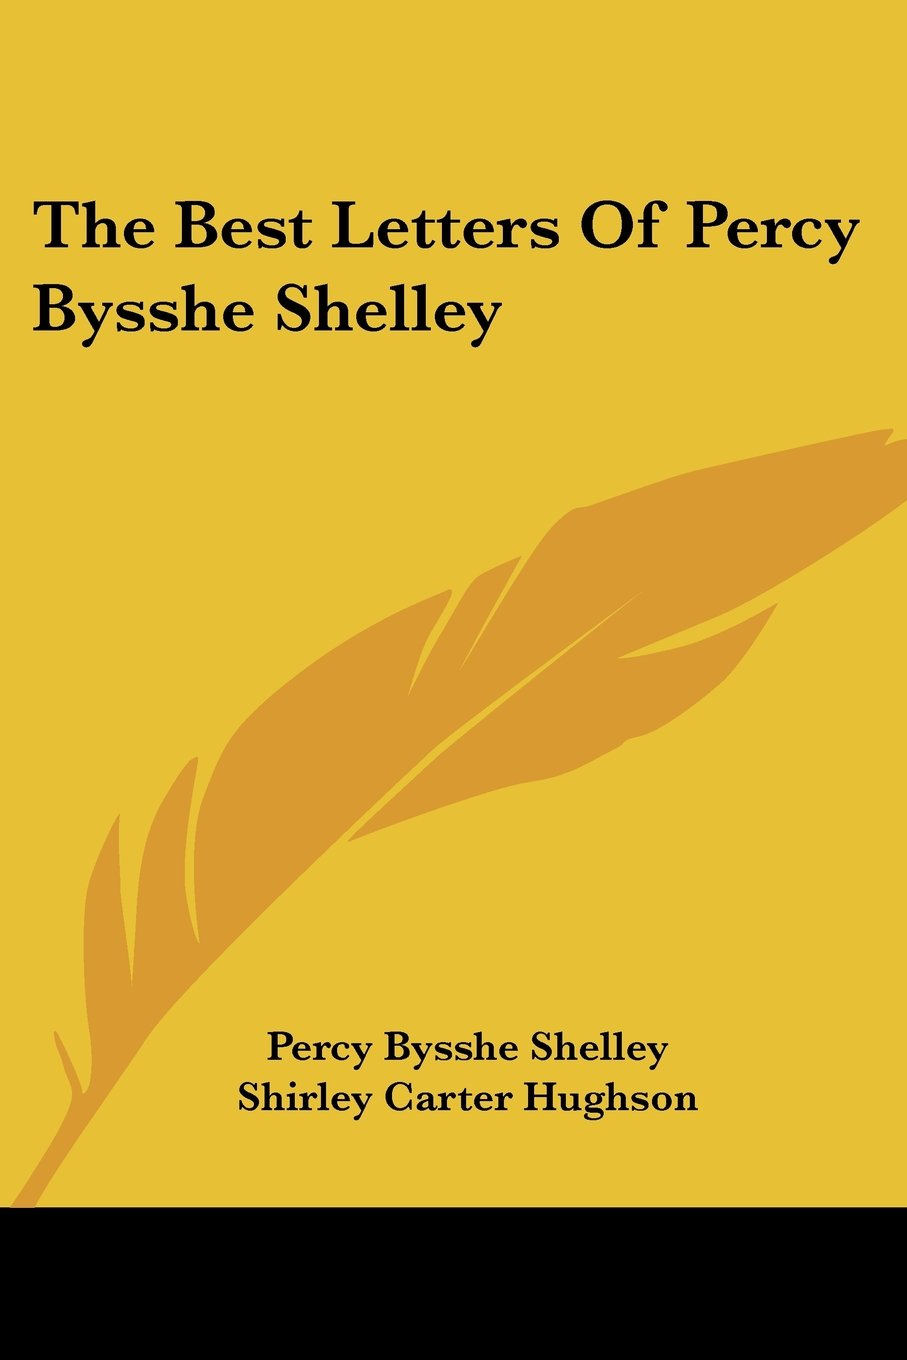 The Best Letters of Percy Bysshe Shelley ebook